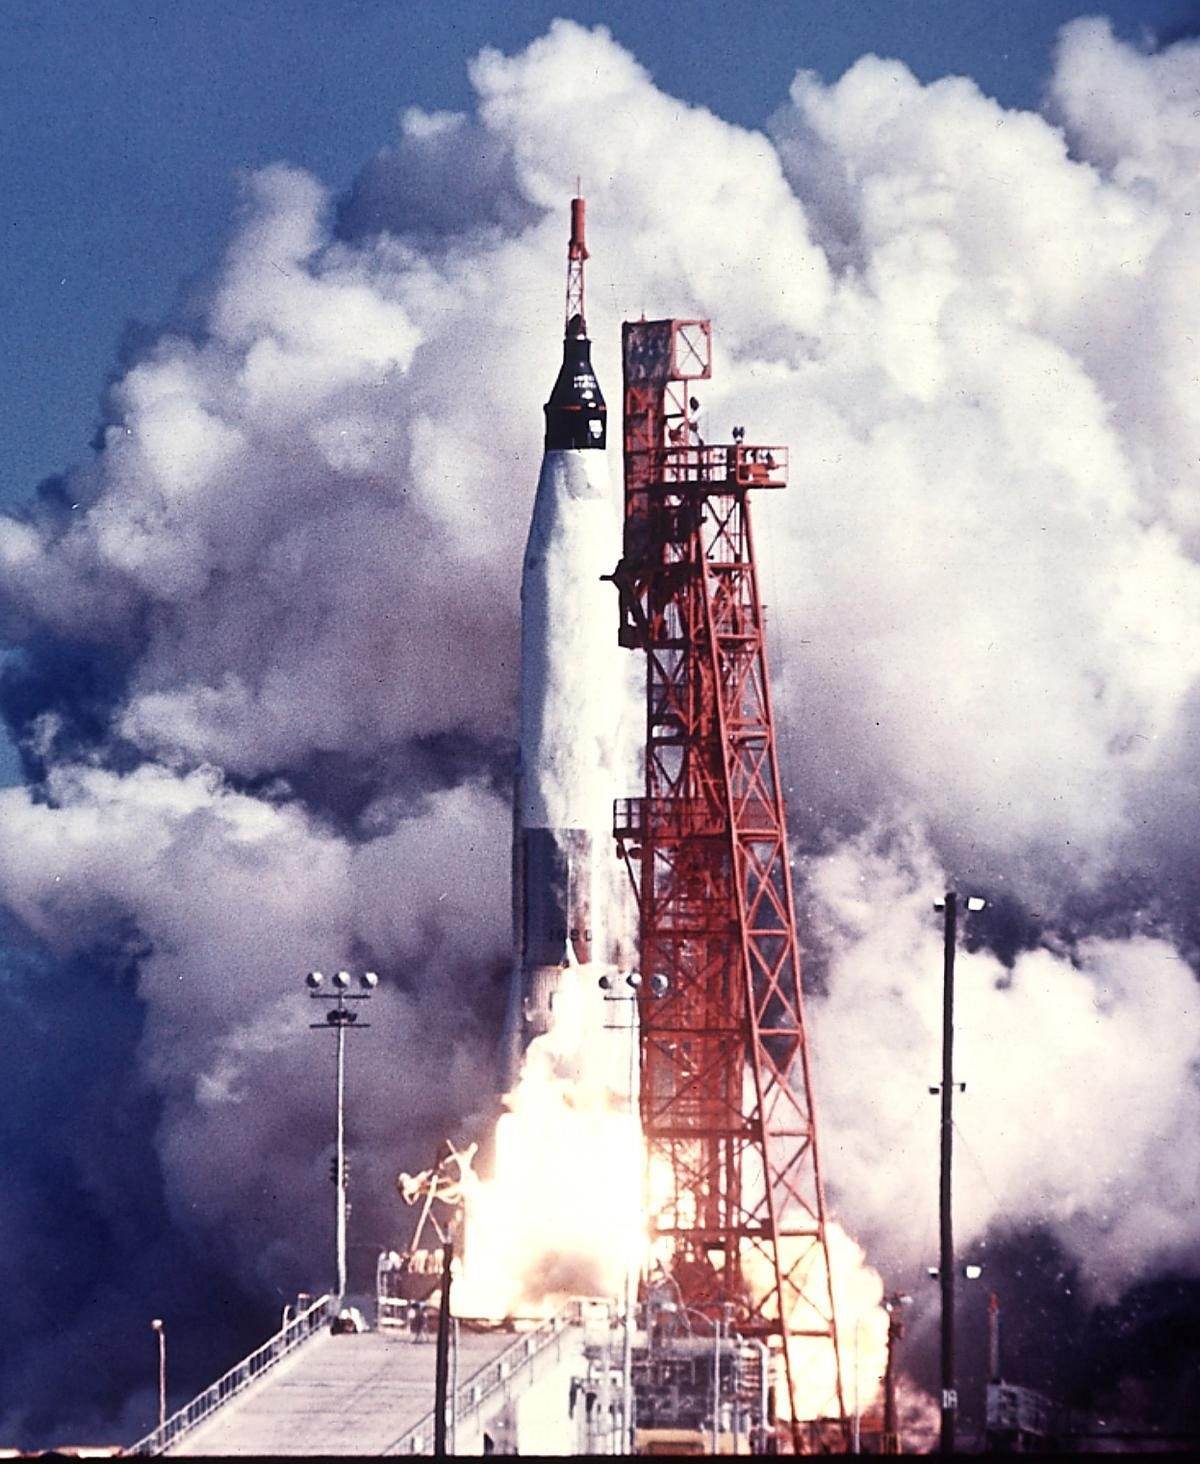 The Atlas rocket and the newly-named Mercury spacecraft called Friendship 7 blast off from Cape Canaveral, Florida, February 20, 1962, carrying Col. John Glenn, Jr., as the first American to orbit the earth